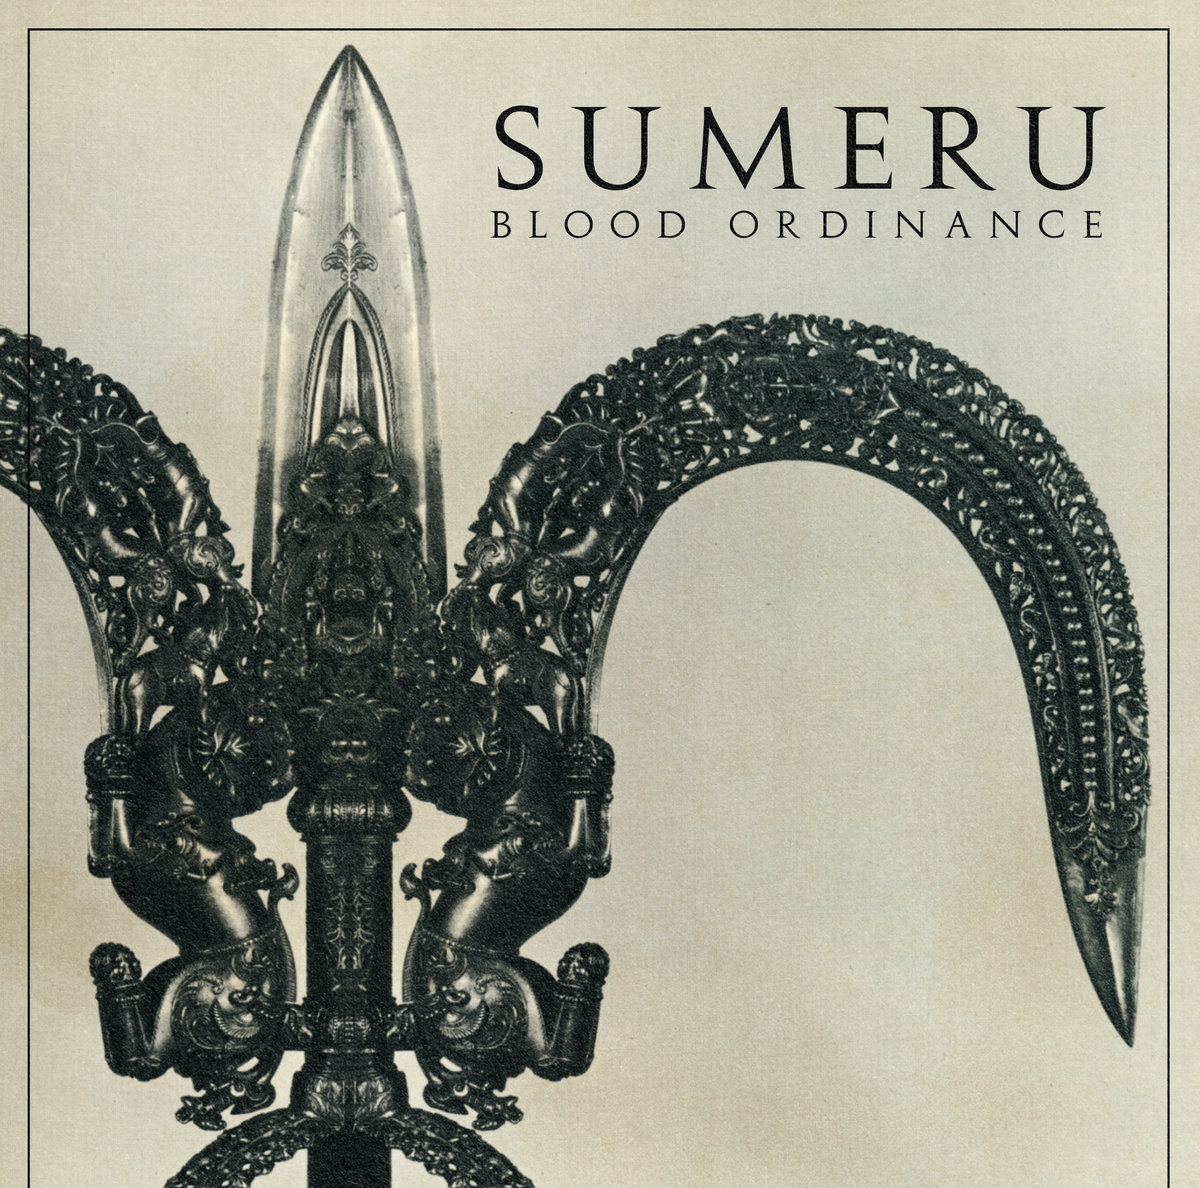 Blood Ordinance Sumeru Album Cover Artwork